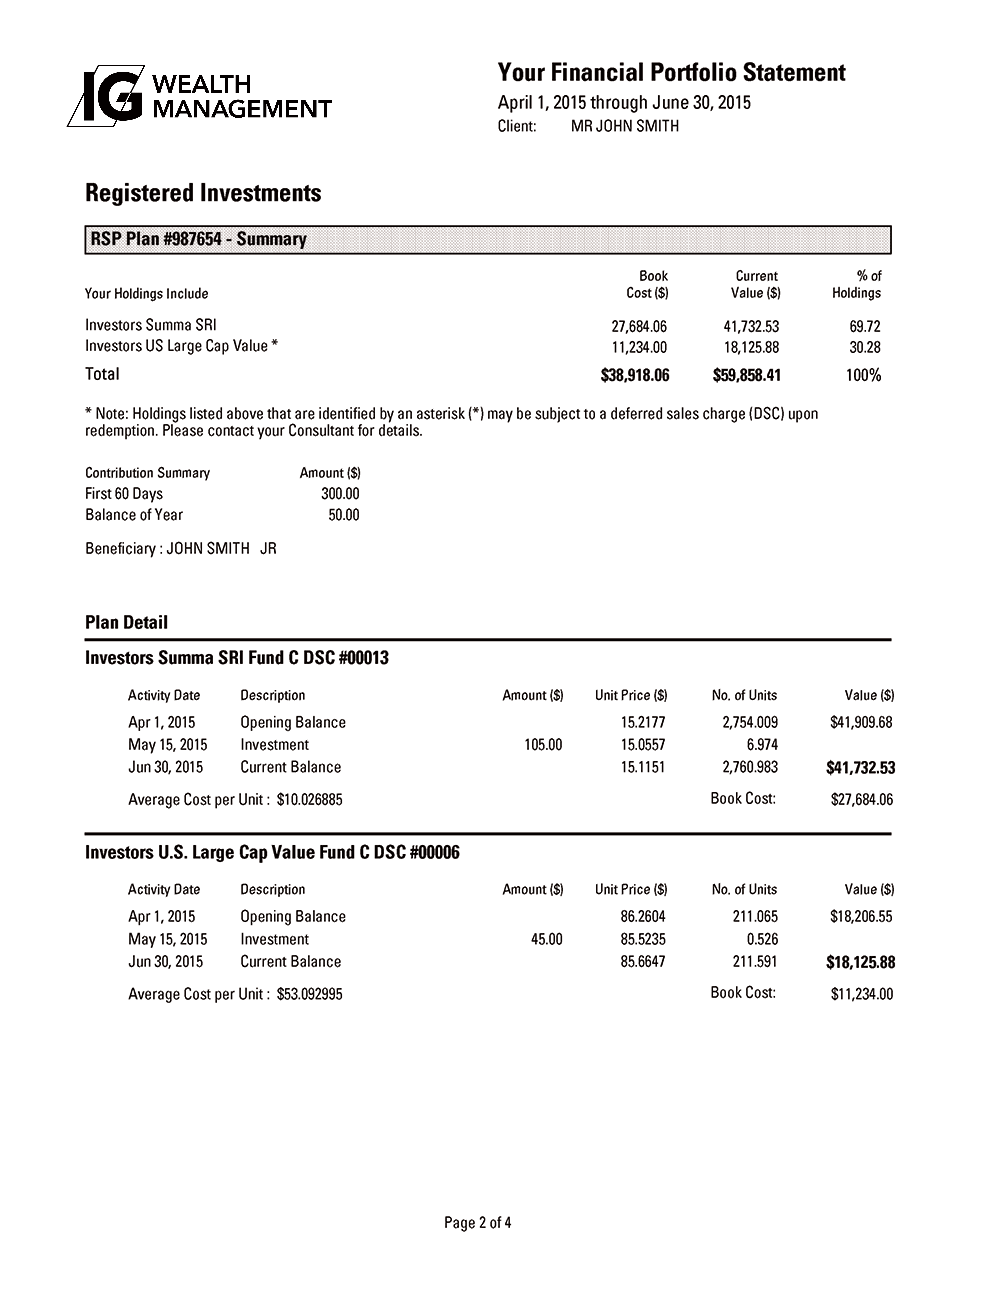 Registered Investments